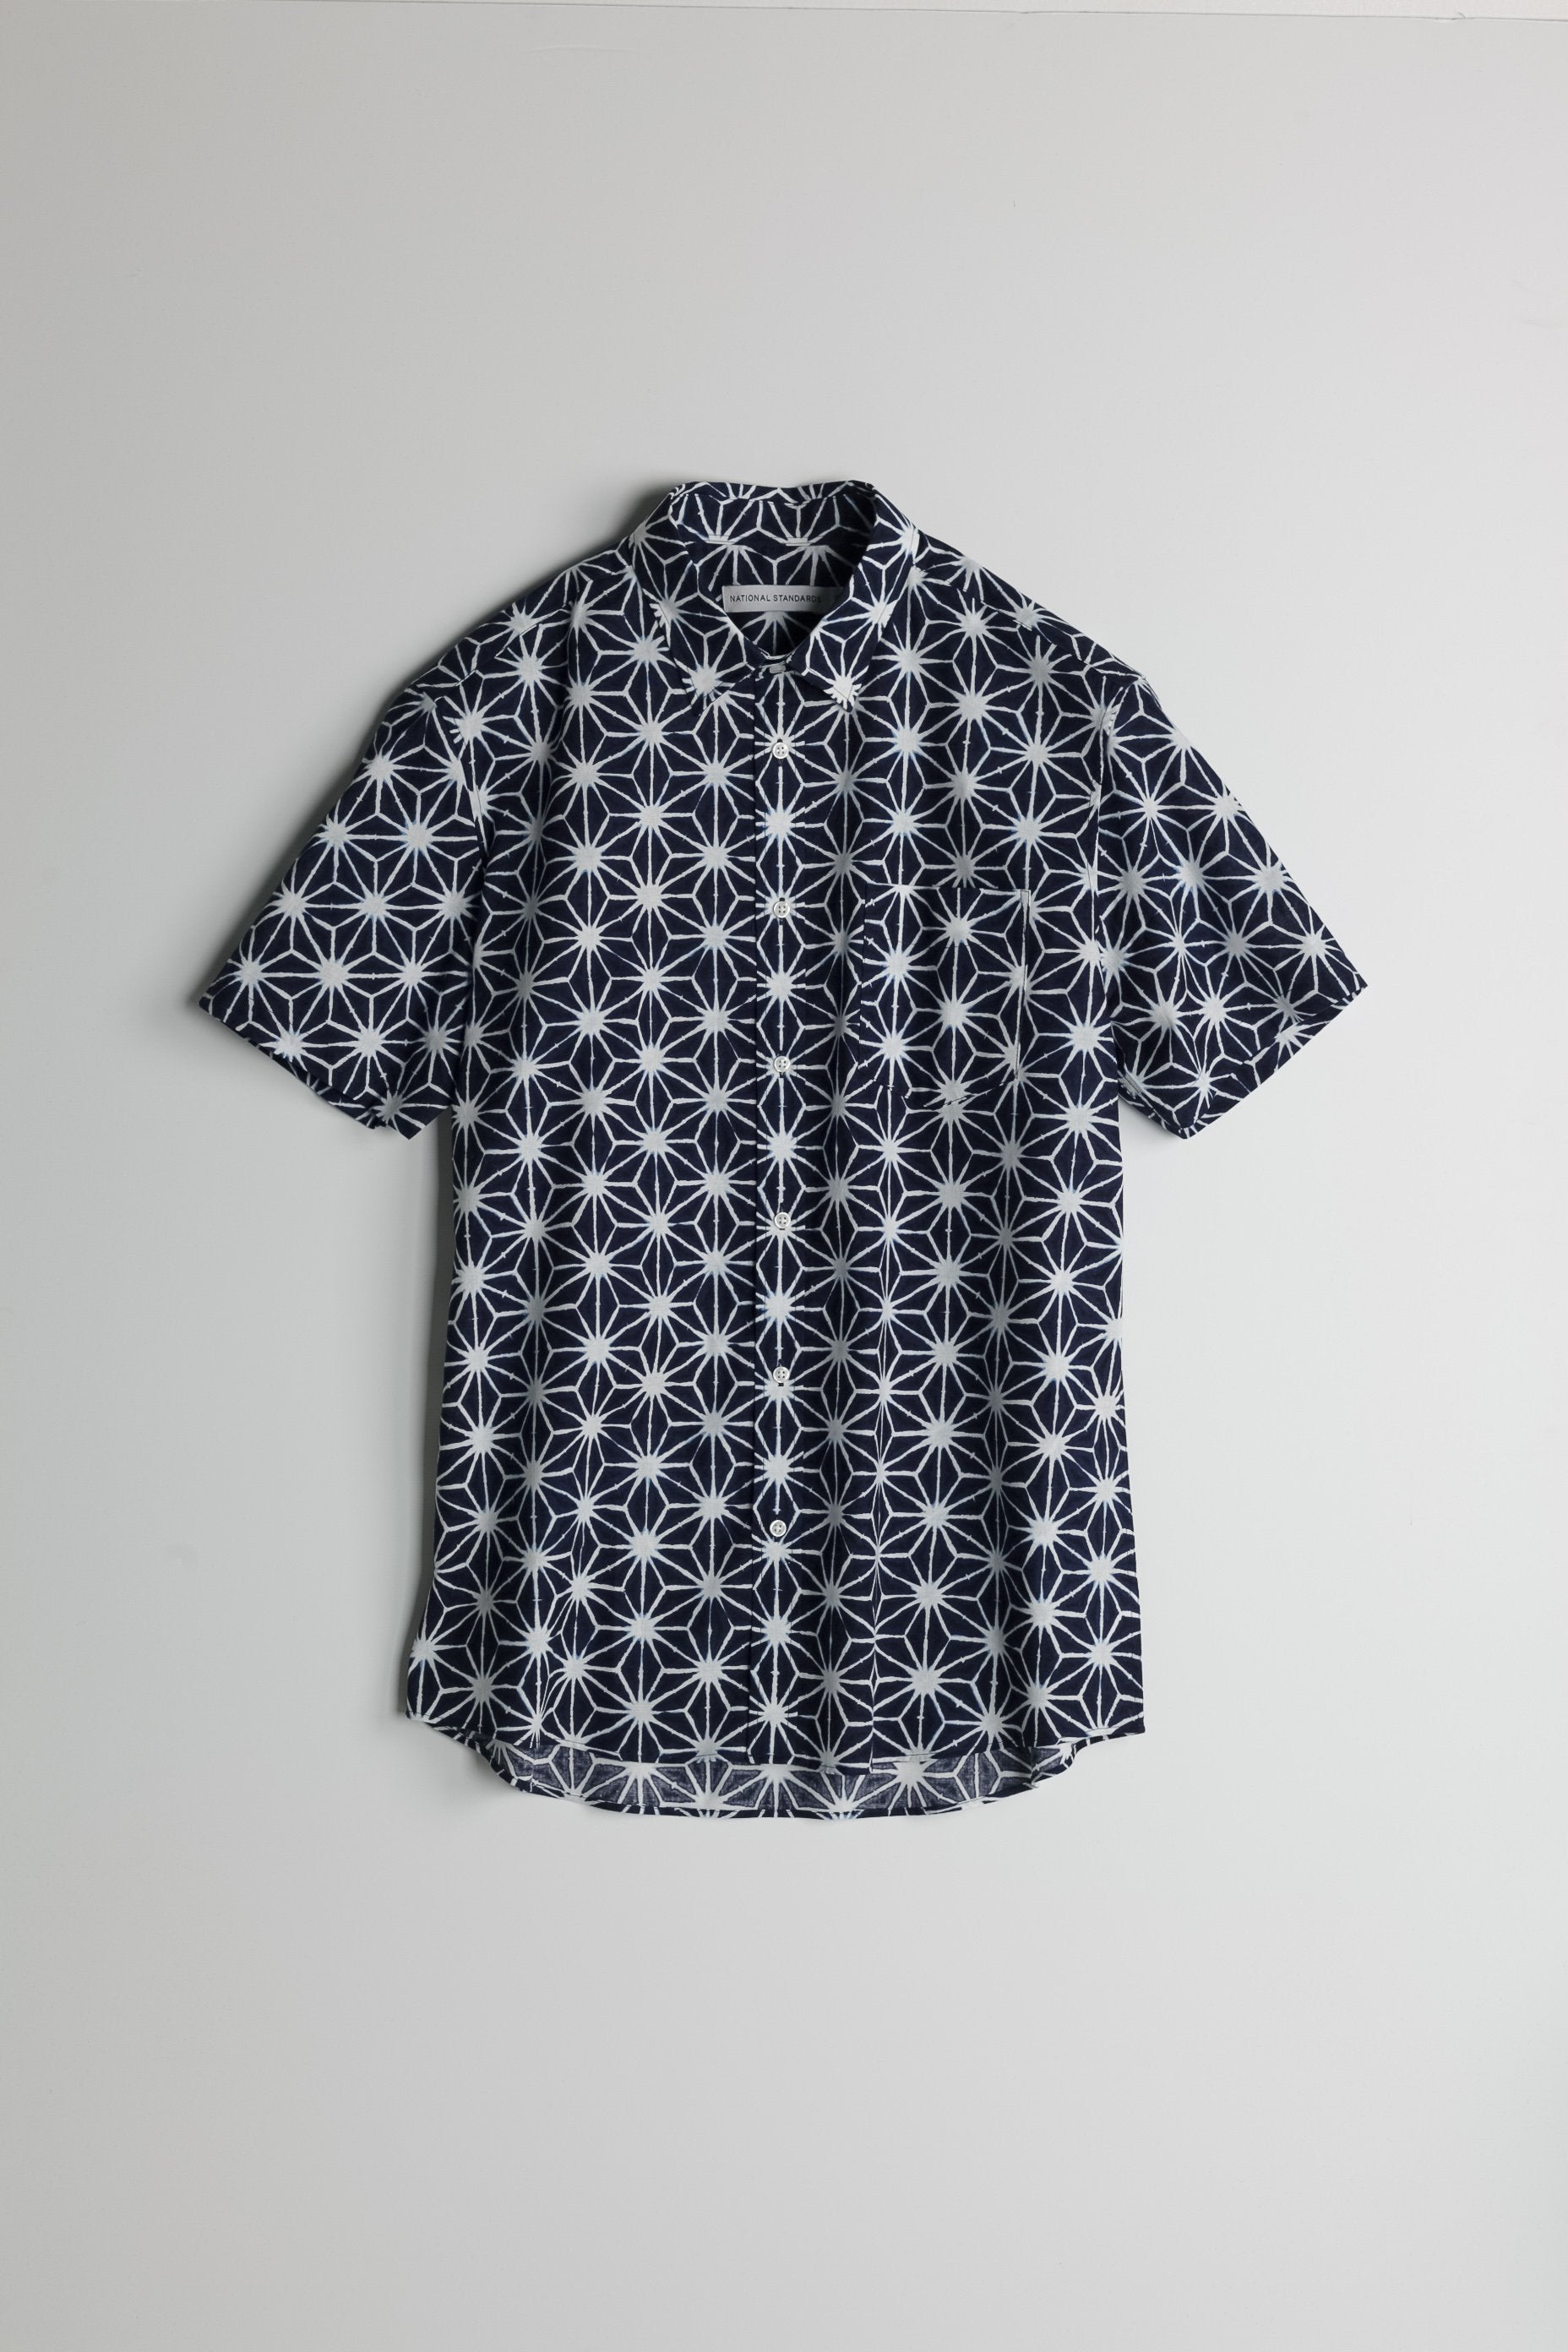 japanese-asanoha-print-in-navy-and-white 01